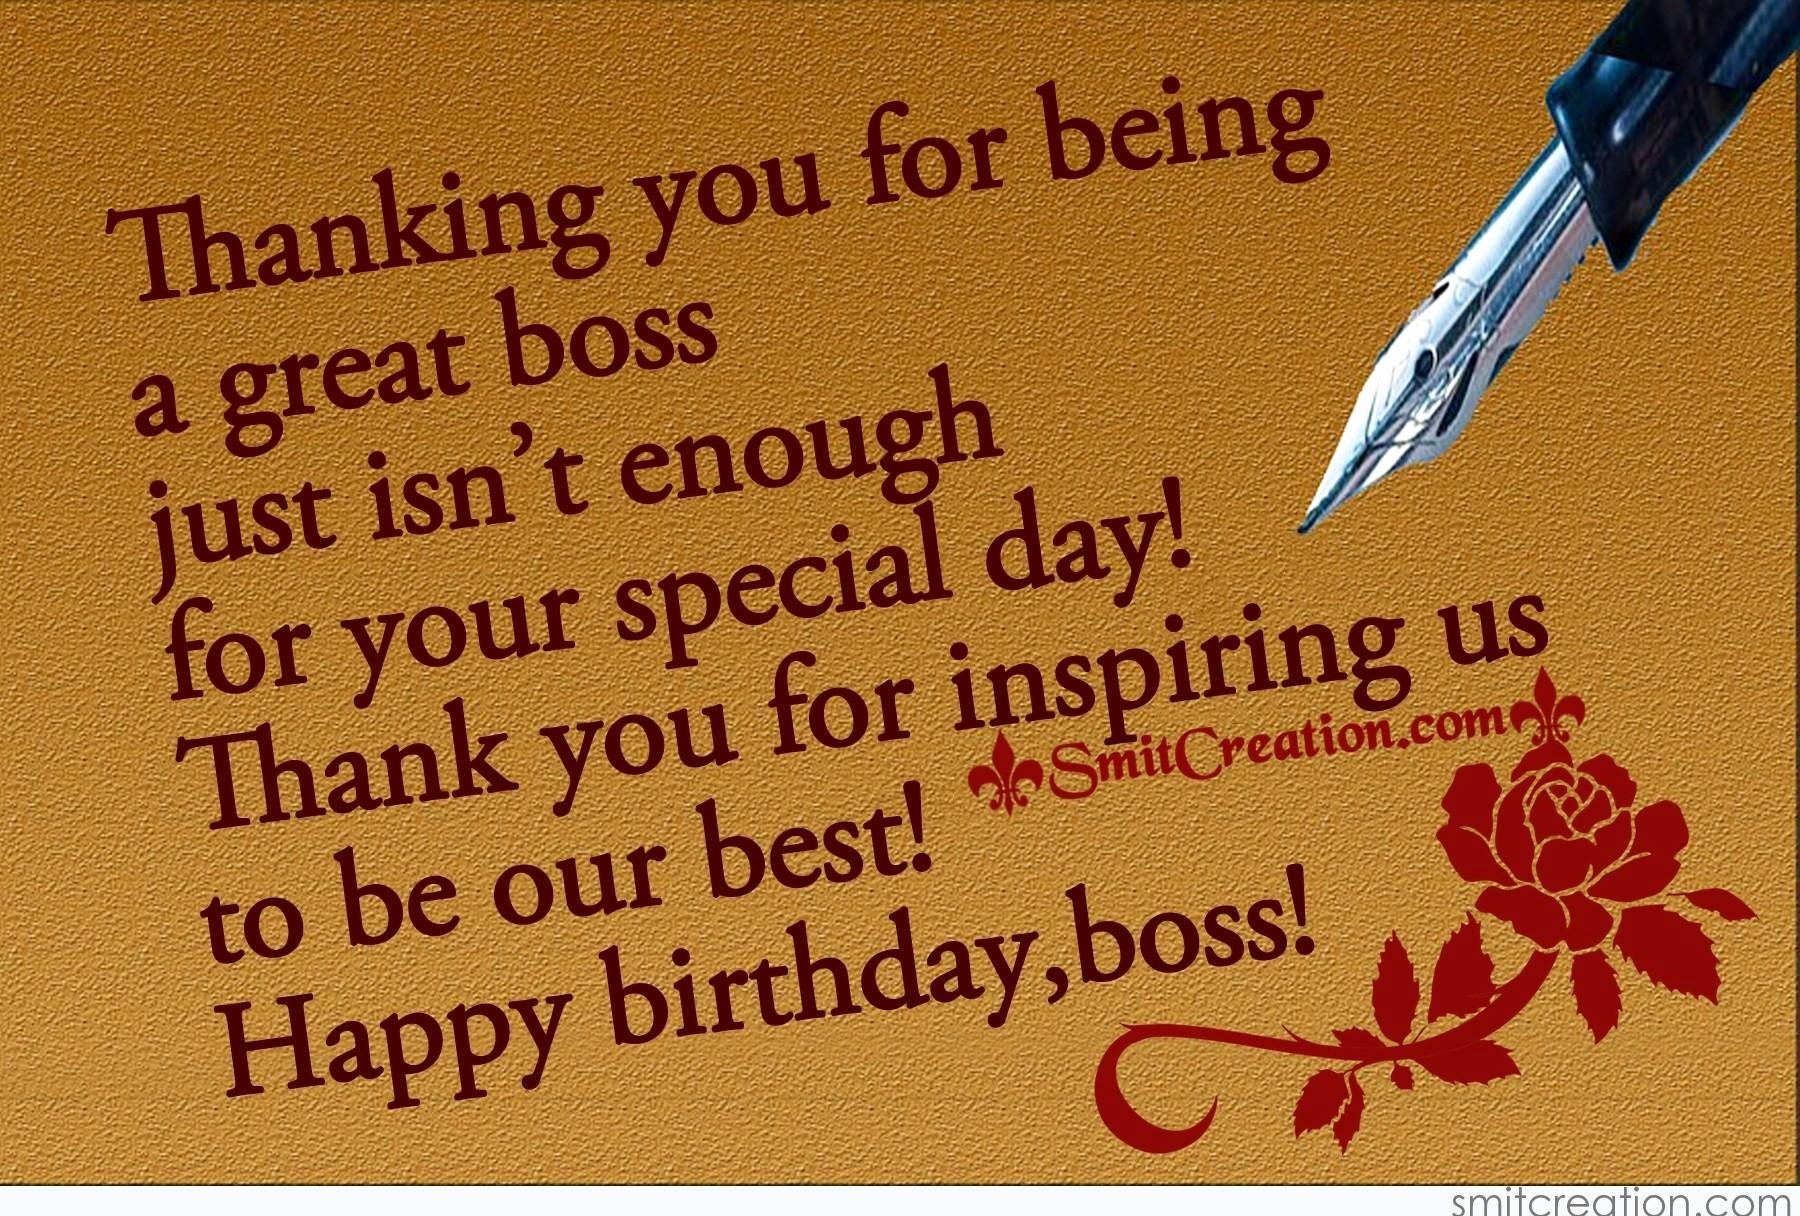 happy birthday wish msg in english ; happy-birthday-wishes-boss-sms-new-birthday-sms-in-english-for-boss-of-happy-birthday-wishes-boss-sms